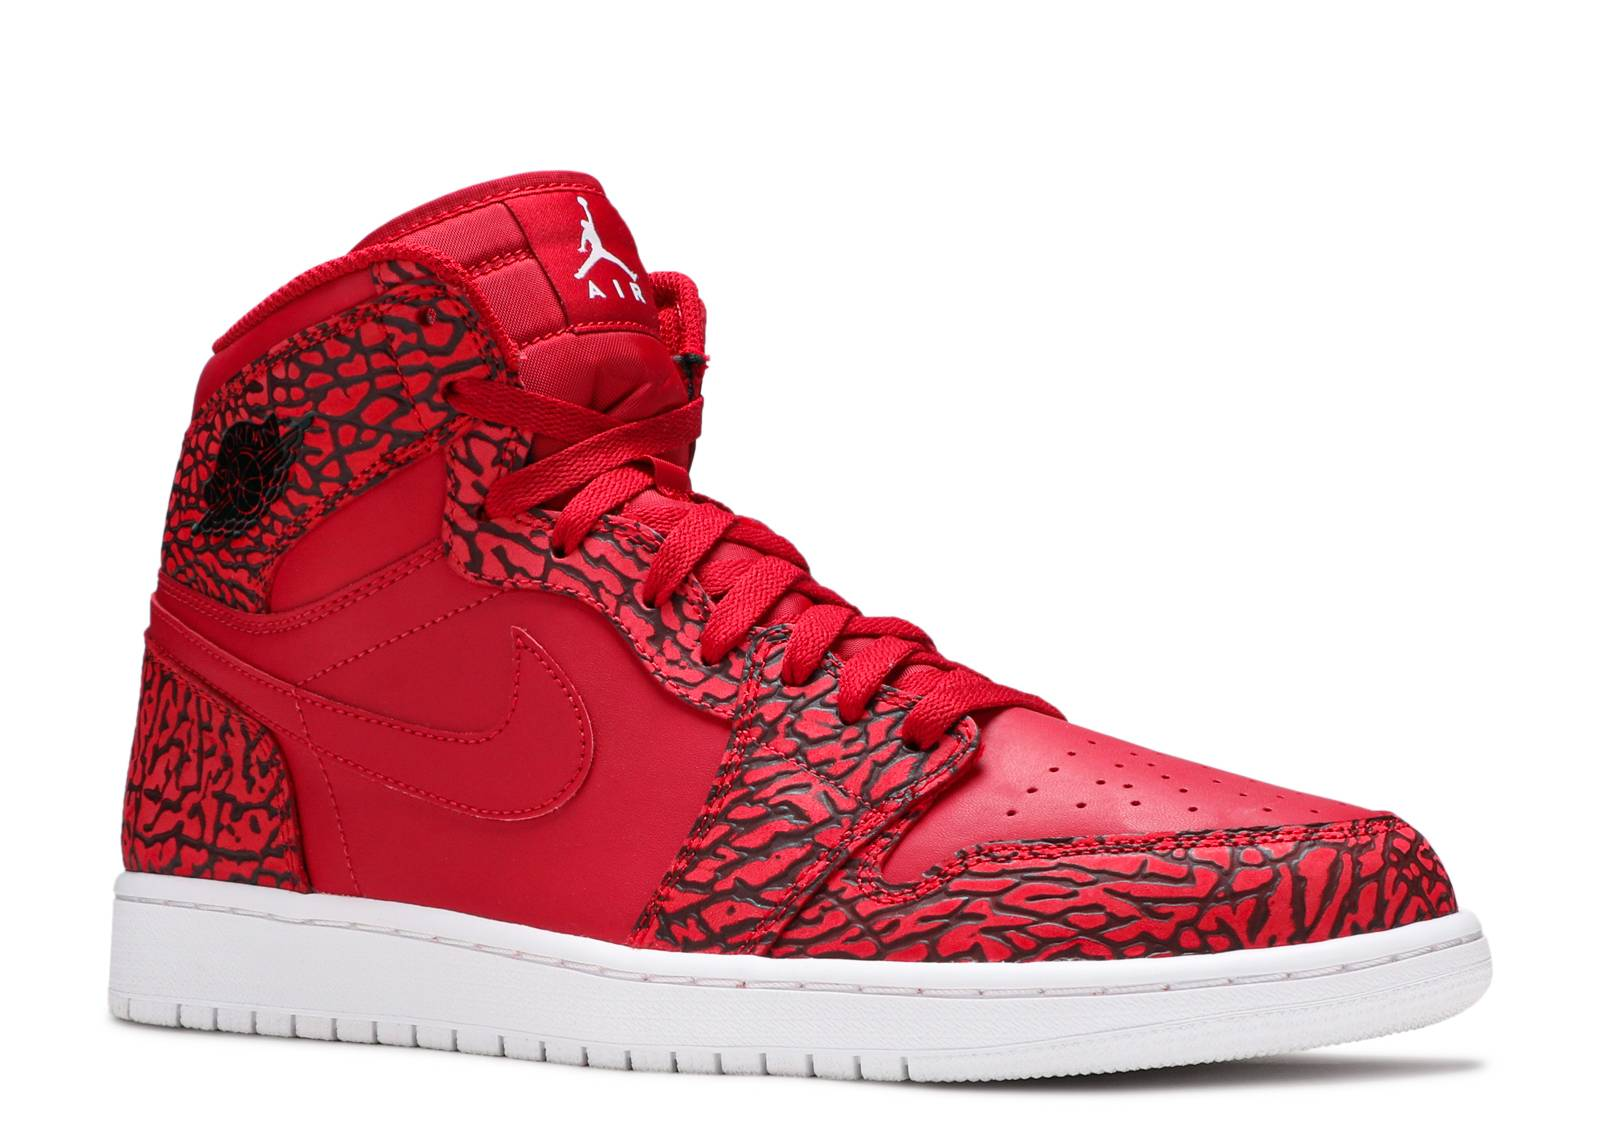 air jordan 1 retro high elephant print red